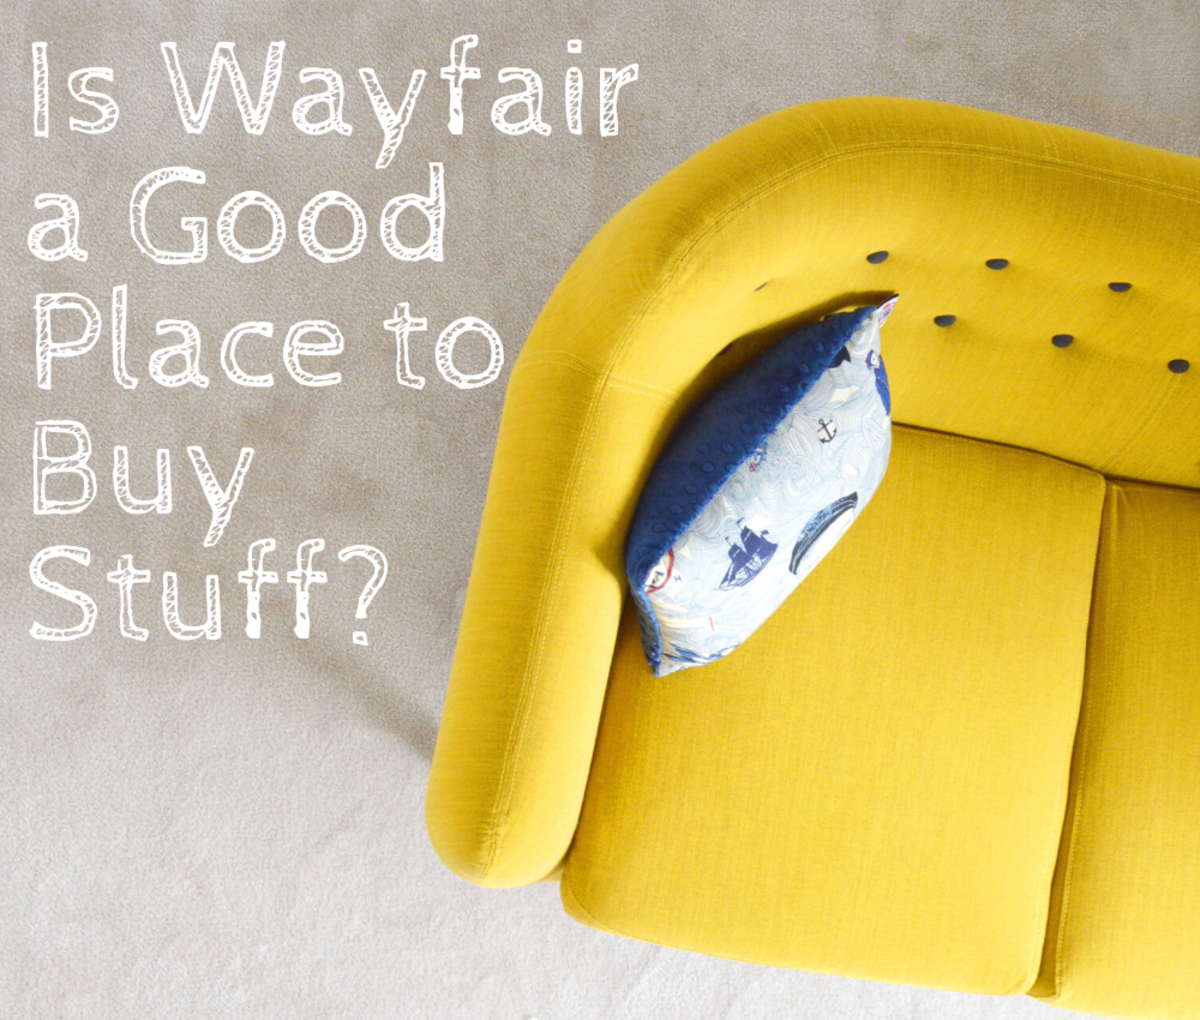 What are the pros and cons of shopping on  Wayfair?